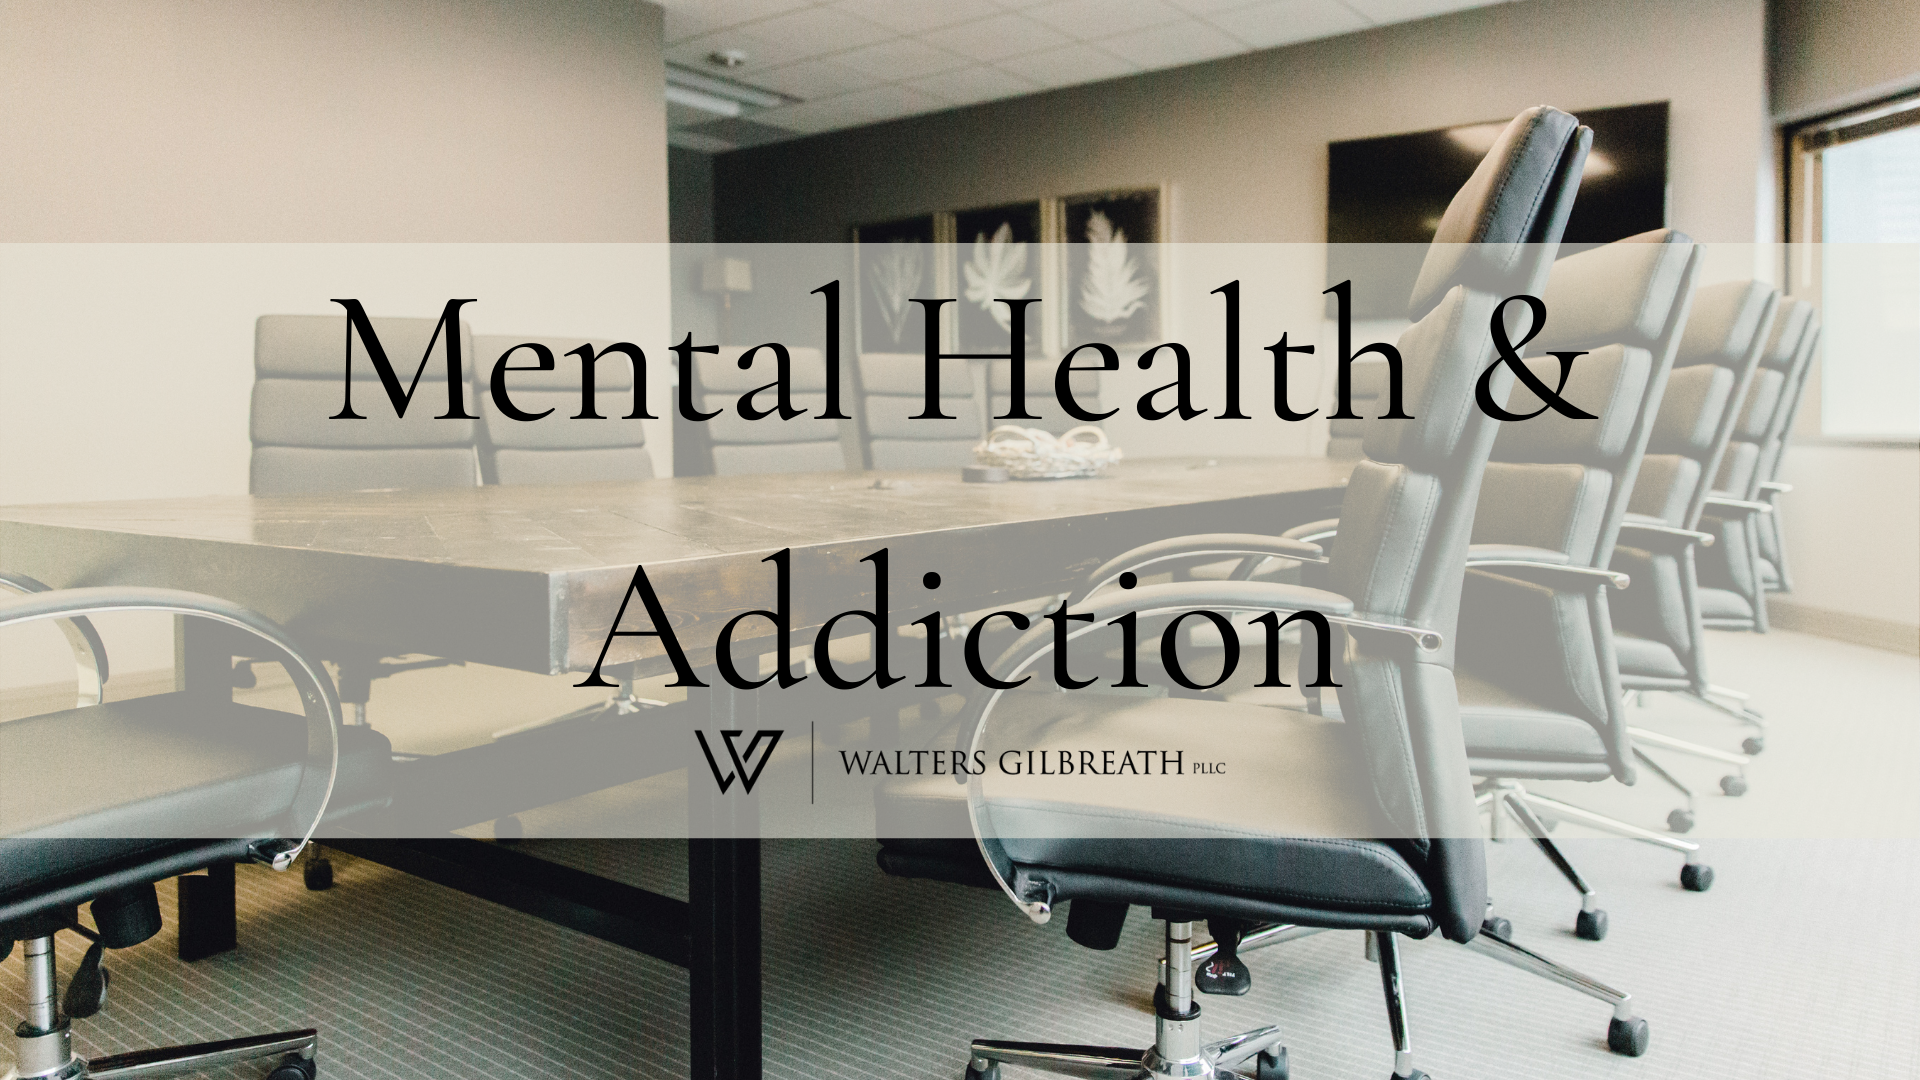 Mental Health & Addiction